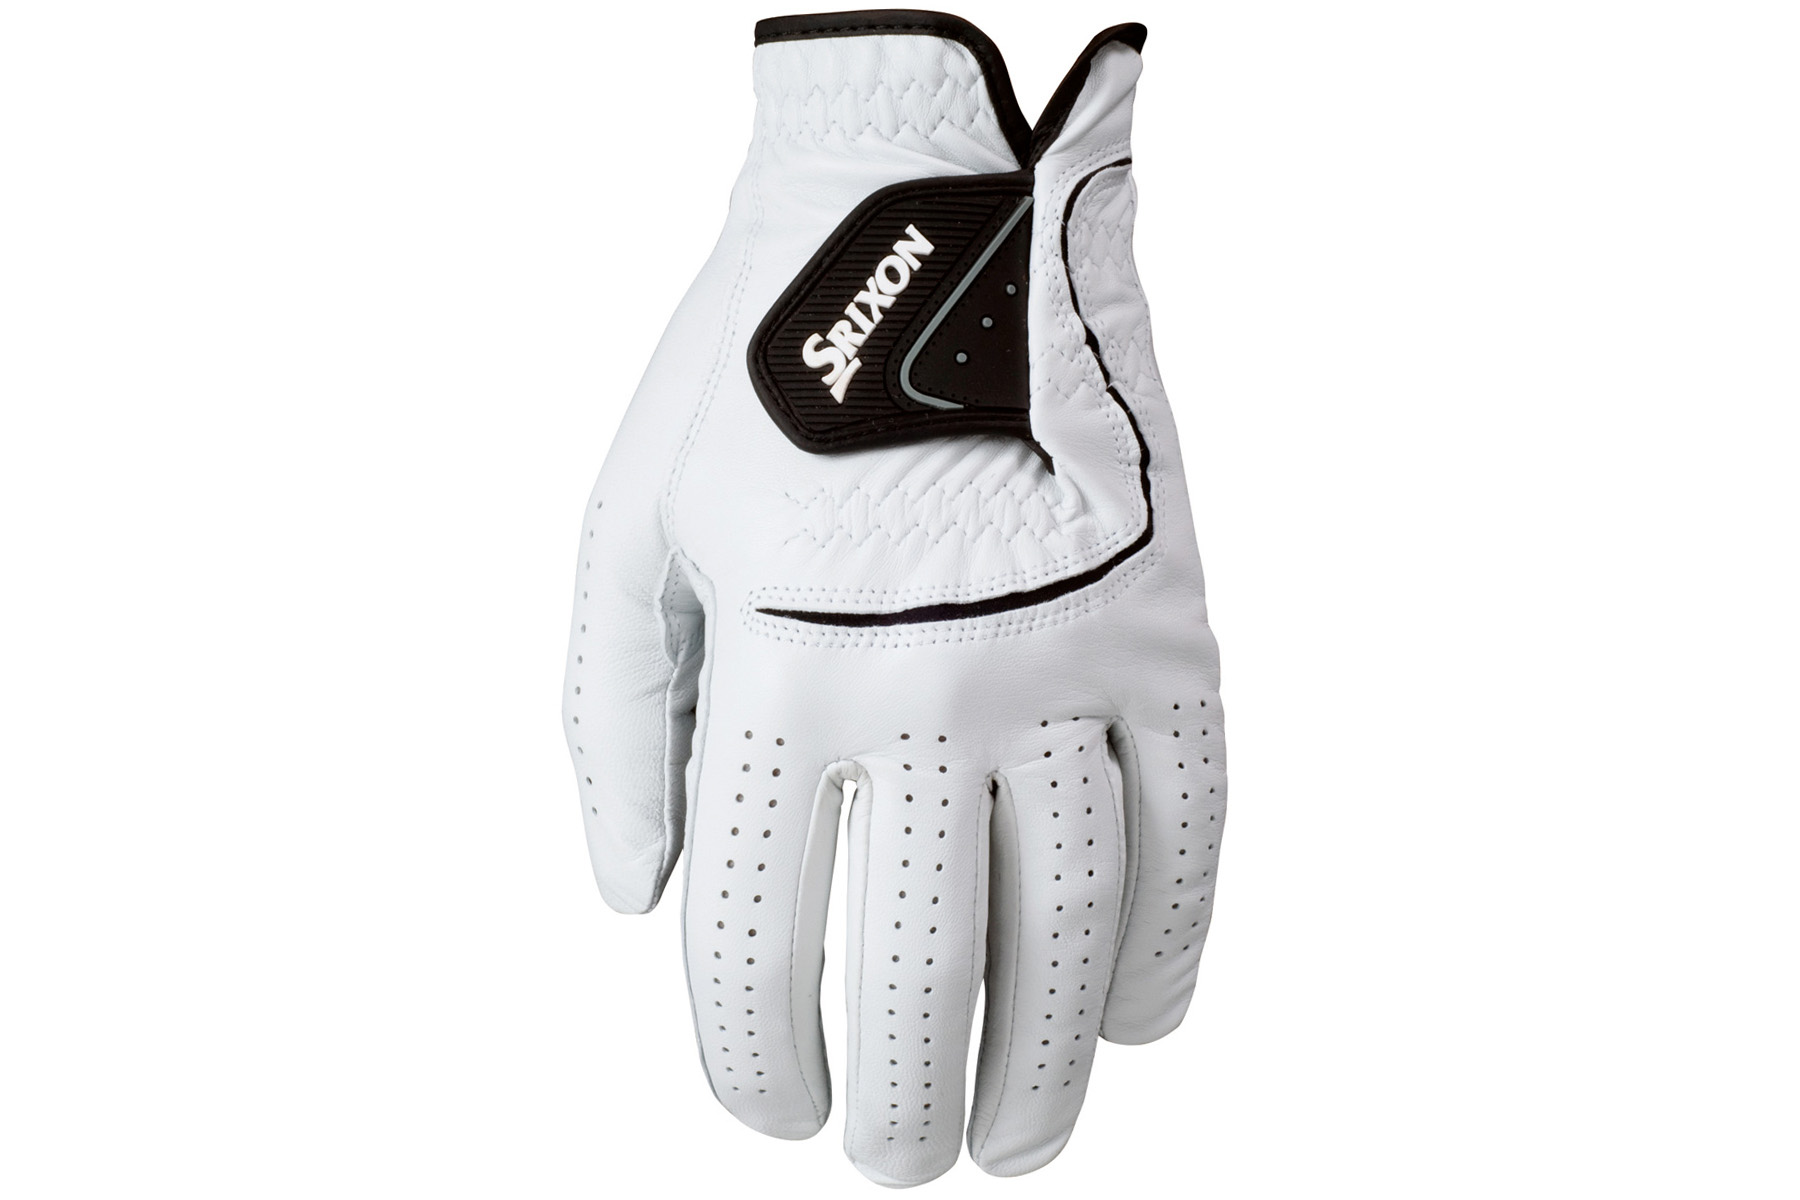 Black leather golf gloves - Srixon Cabretta Leather Glove